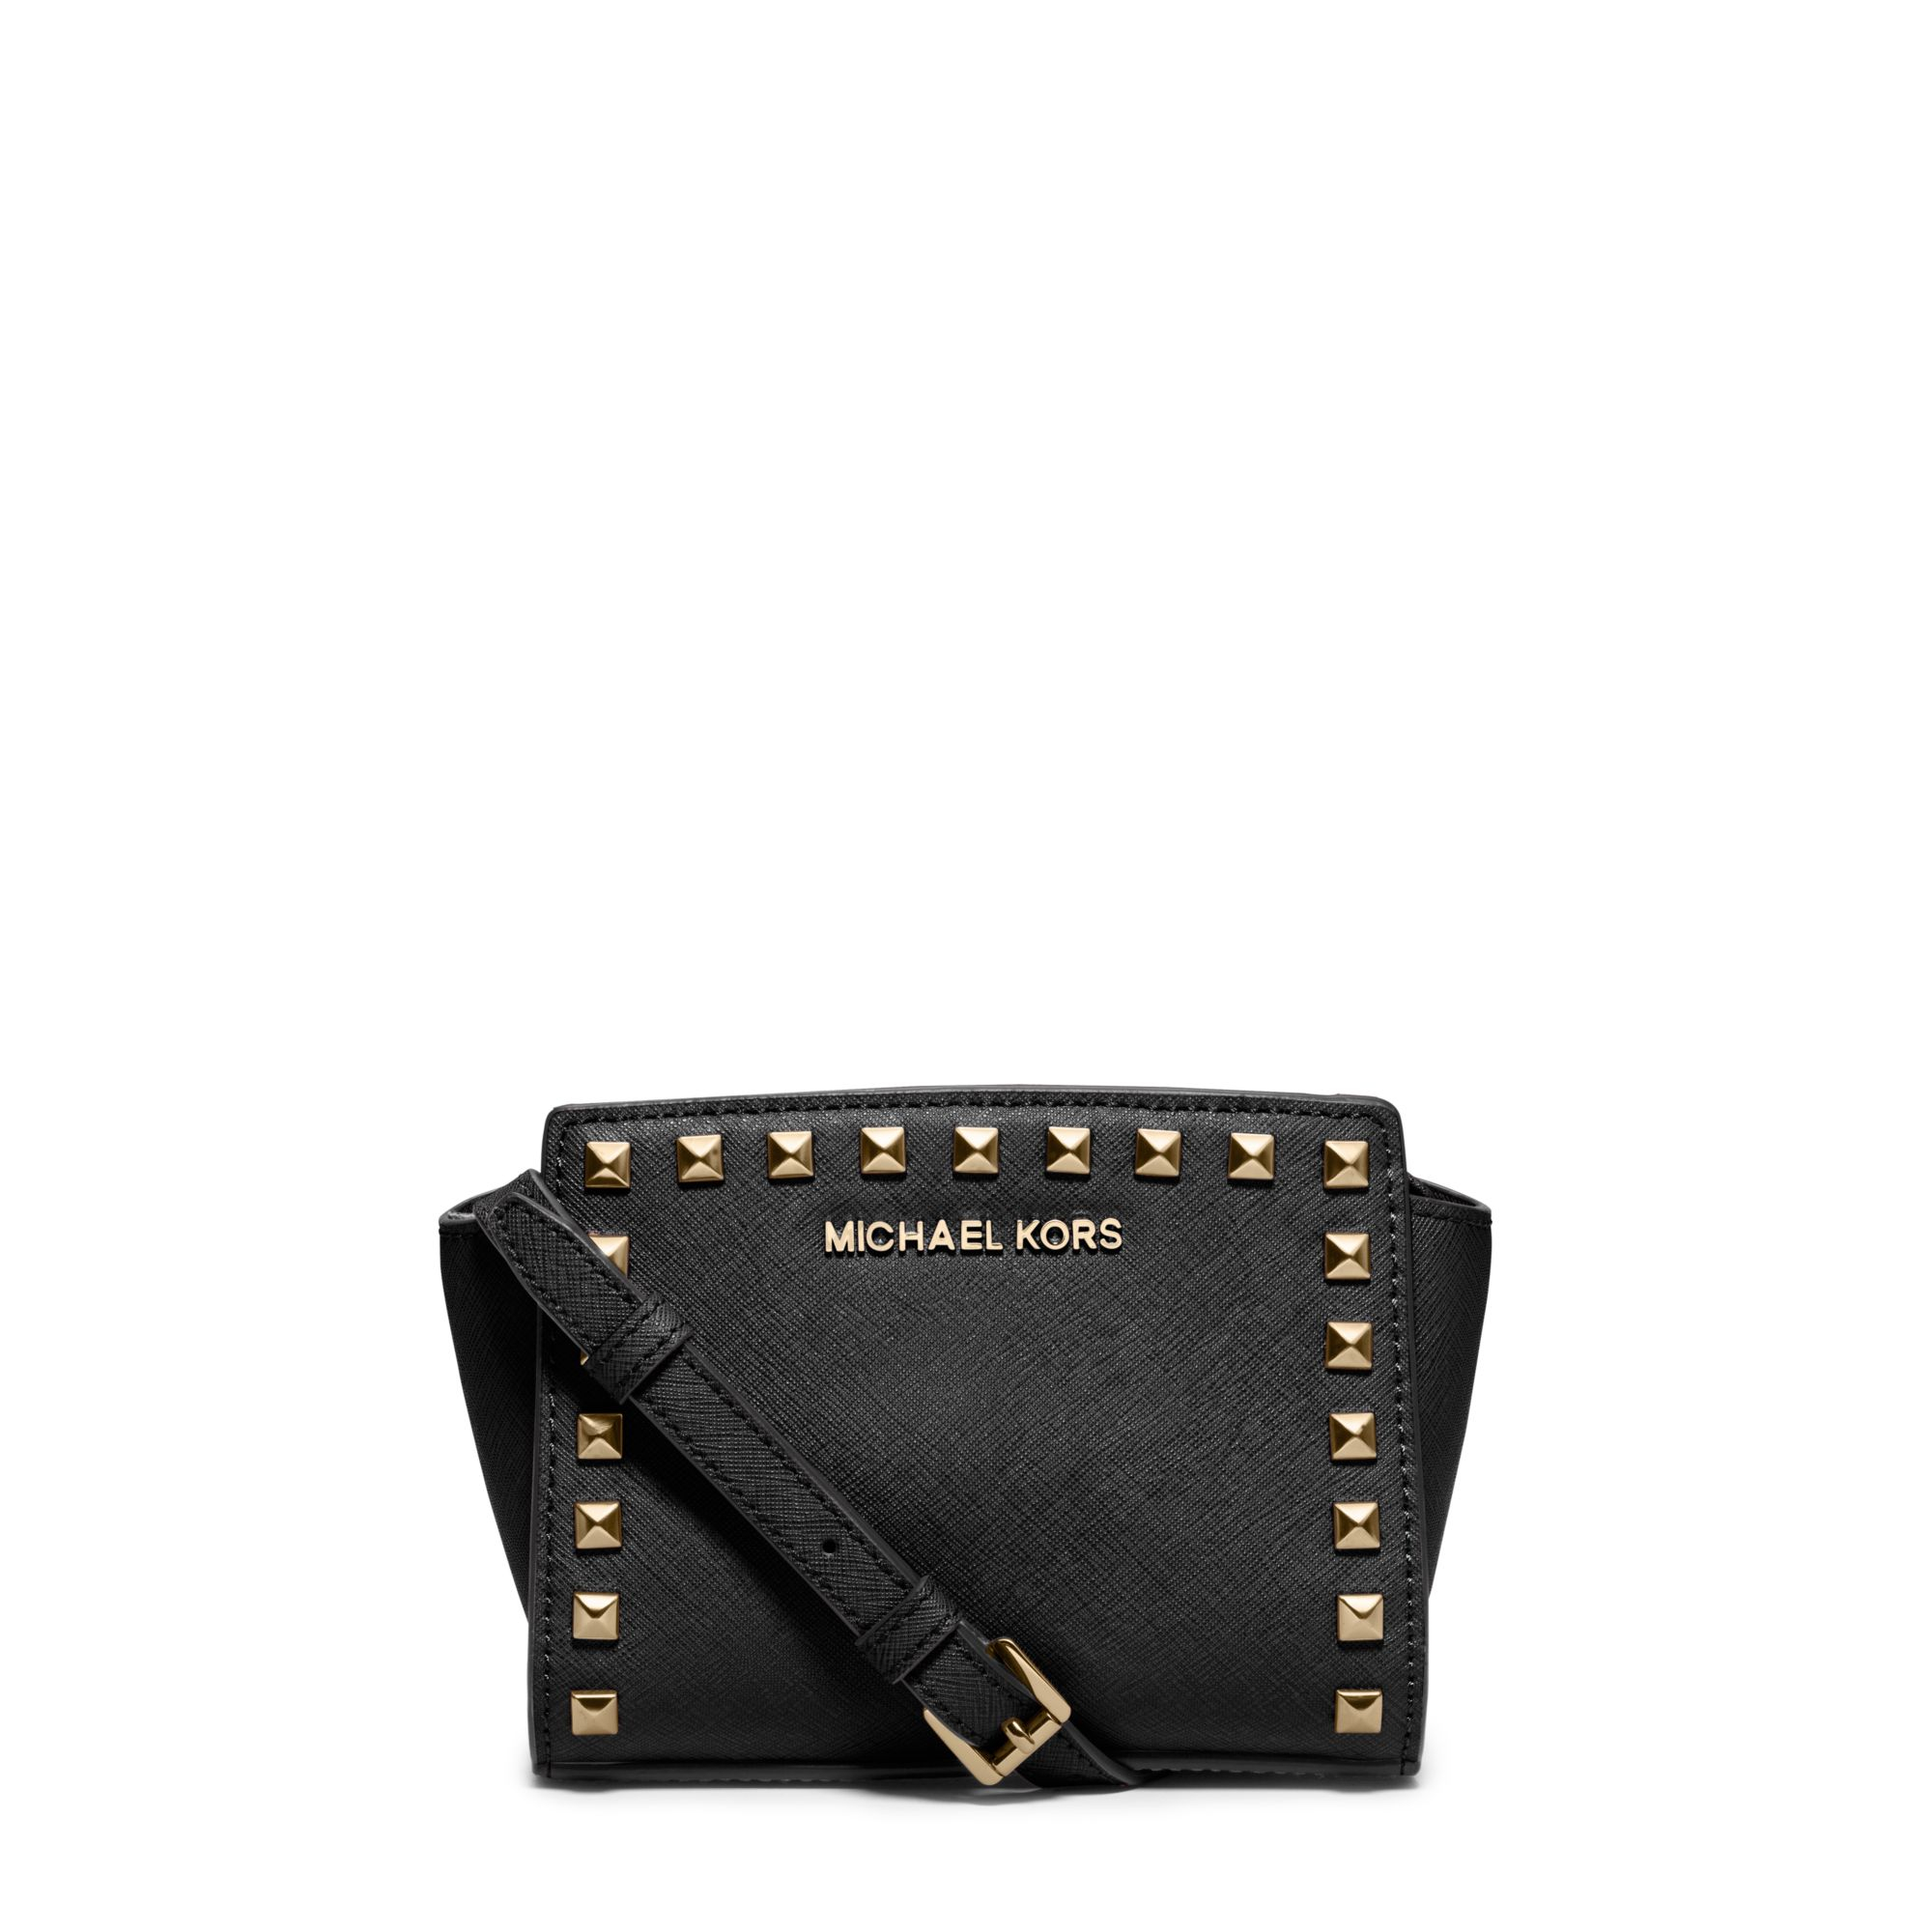 lyst michael kors selma mini studded leather crossbody in black rh lyst com